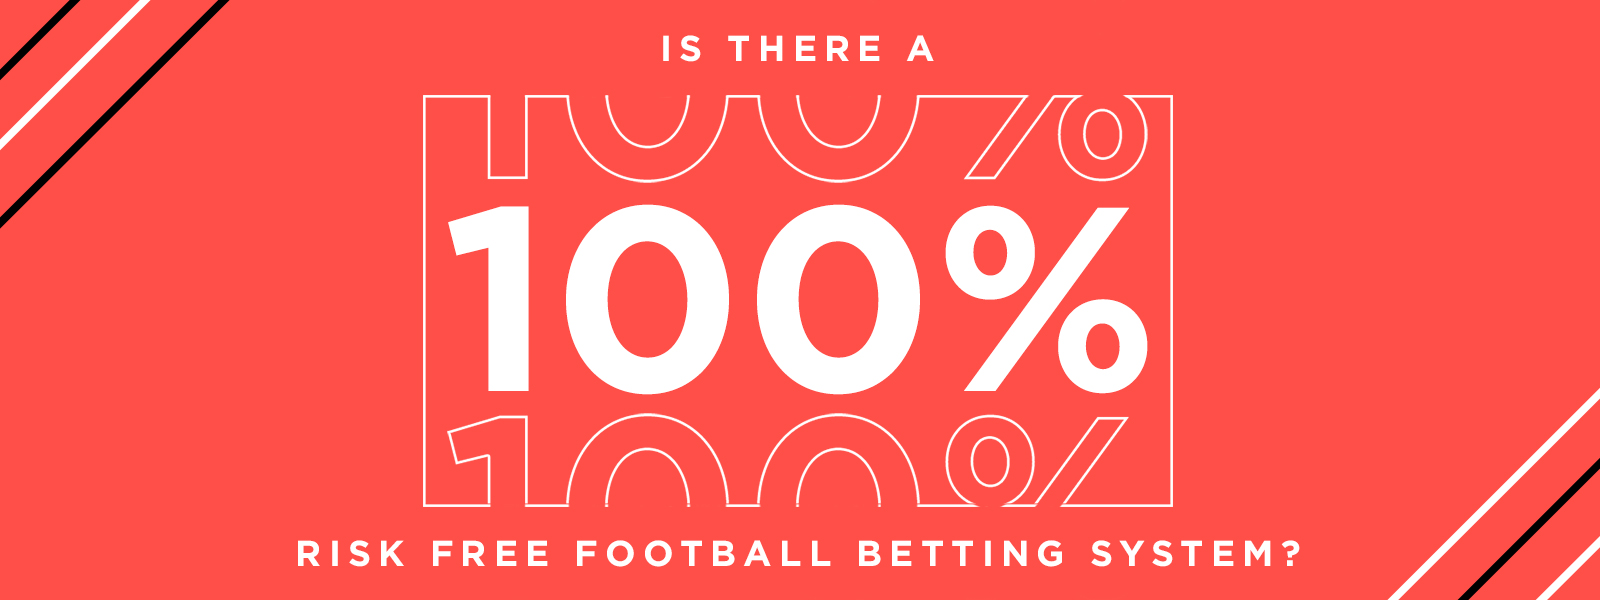 Is There a 100% Risk Free Soccer Betting System?